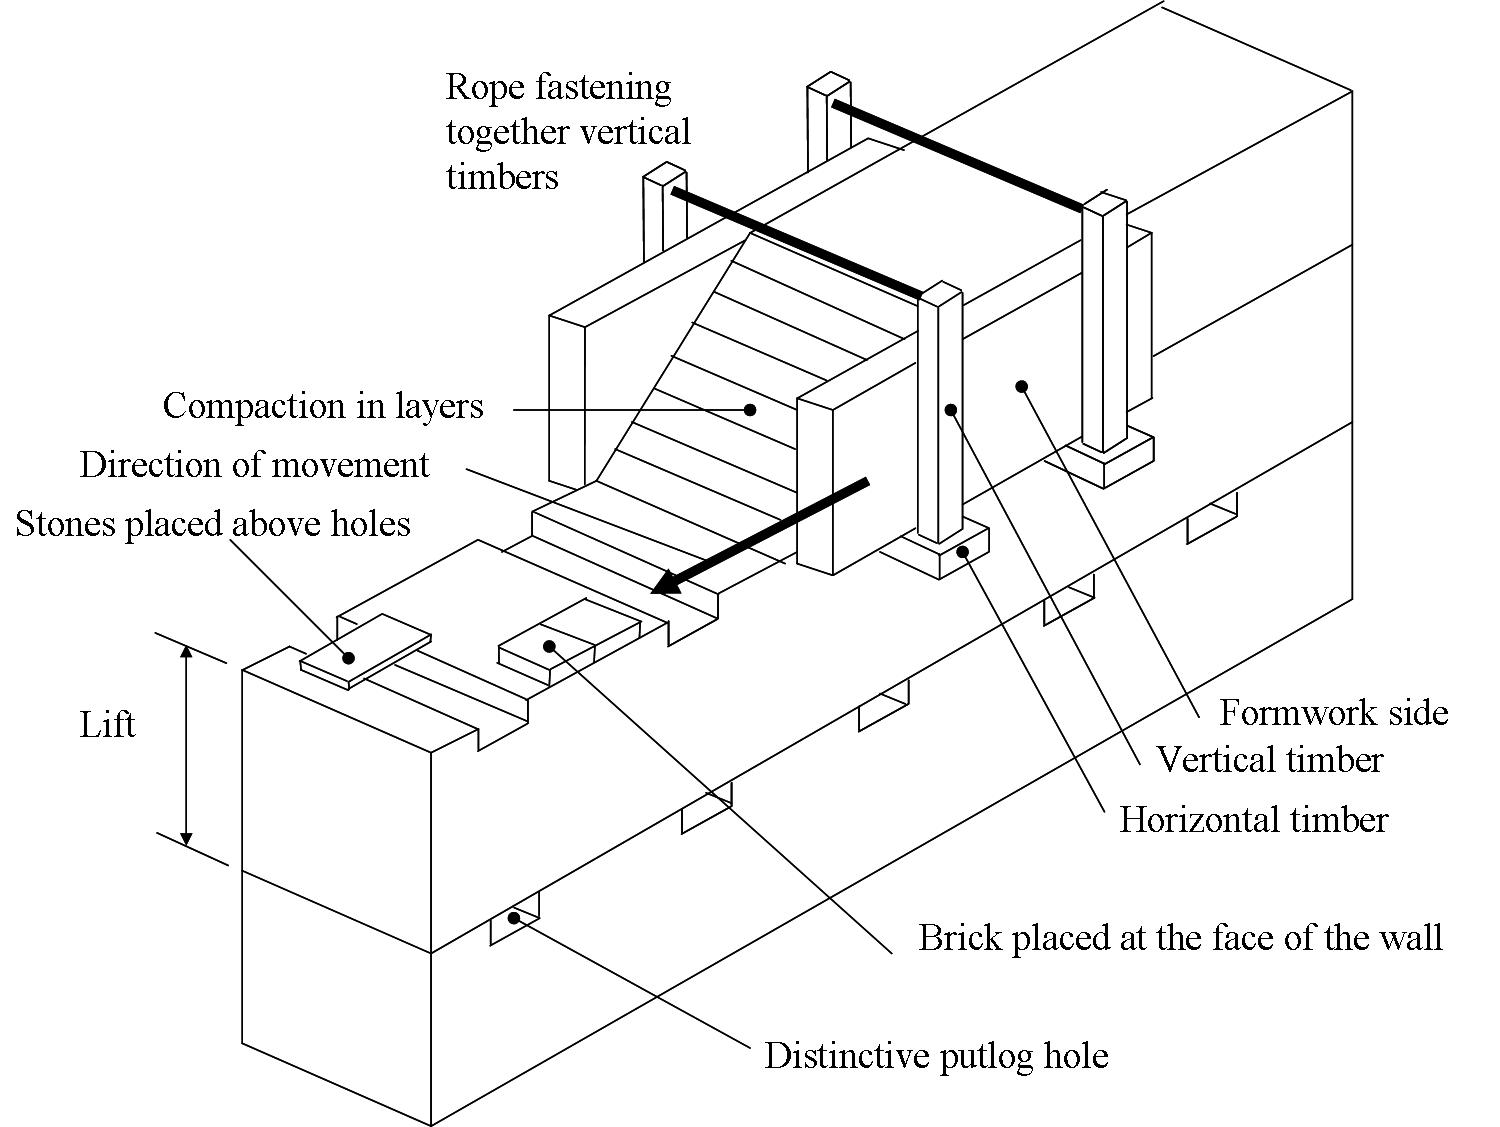 hight resolution of published november 22 2007 at 1500 1127 in rammed earth wall construction diagram